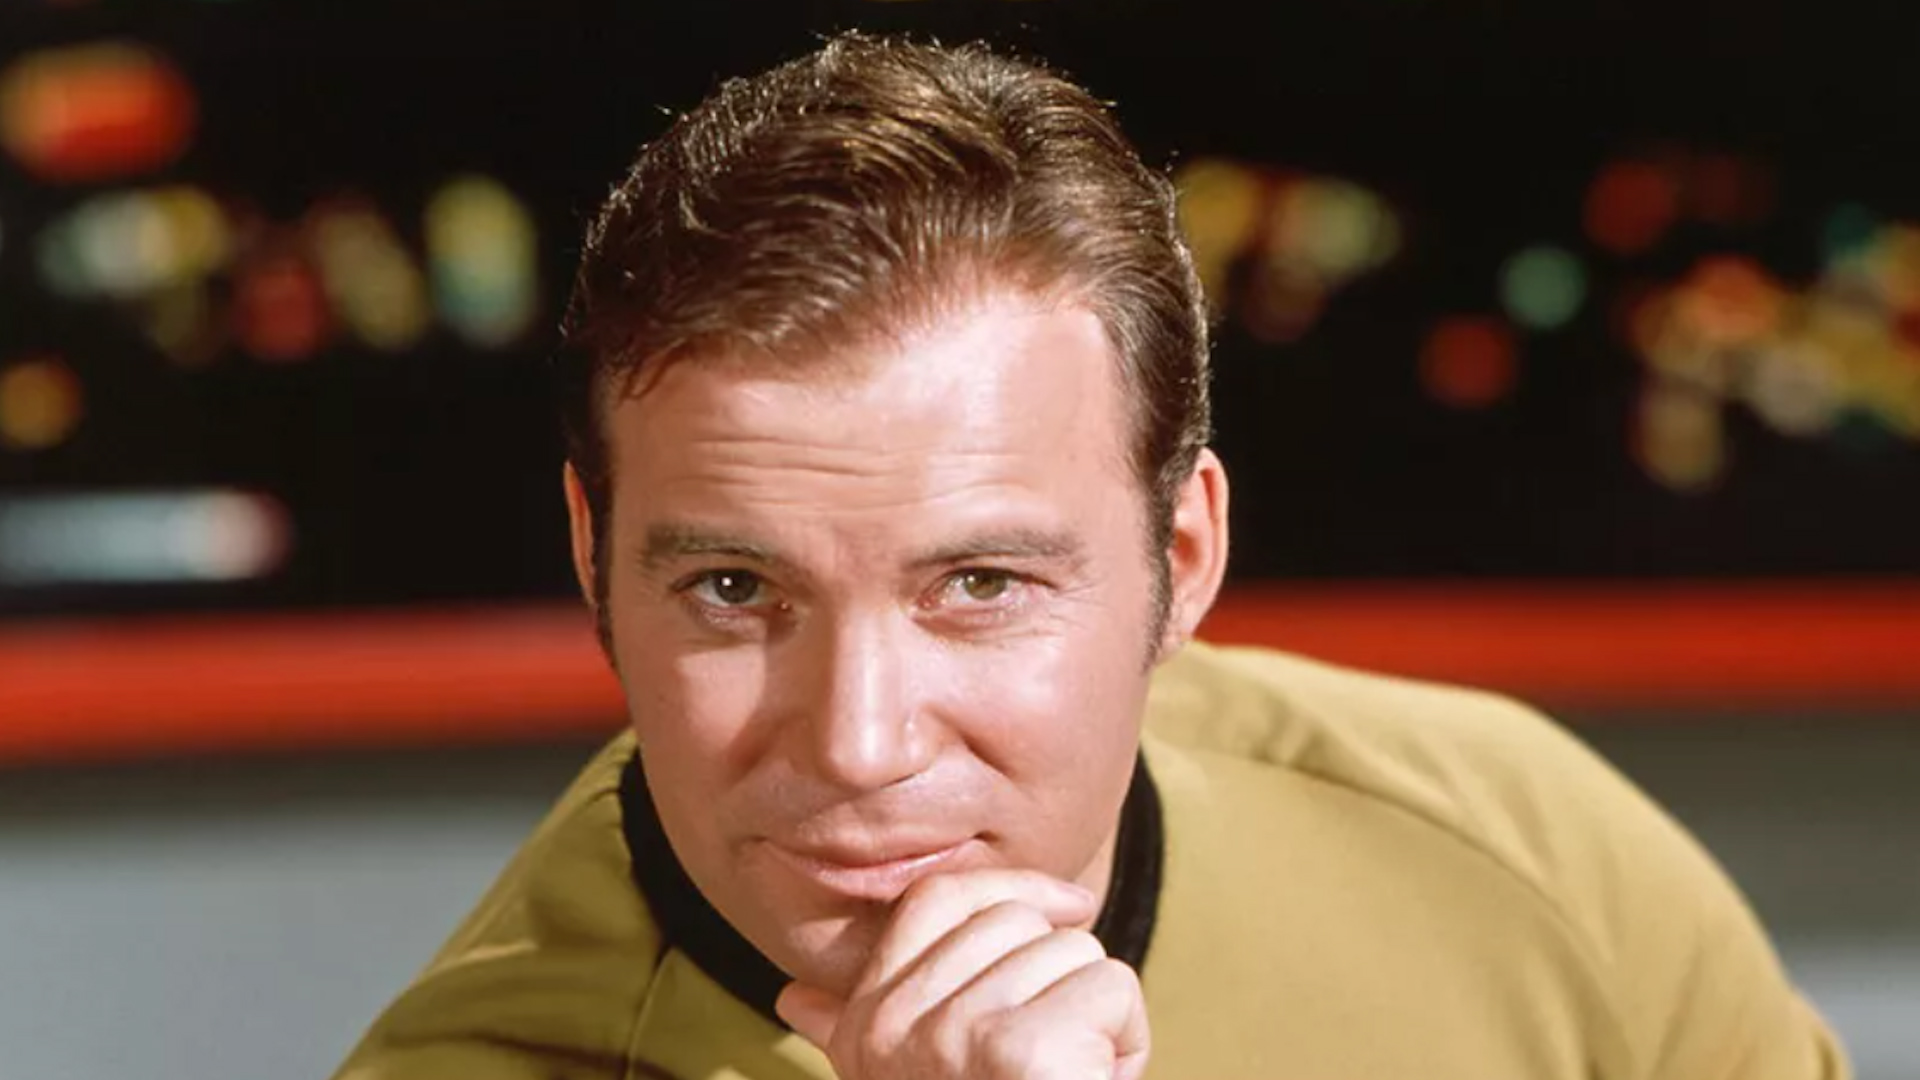 Video: William Shatner goes to space, Apple pushes against sideloading apps (again)